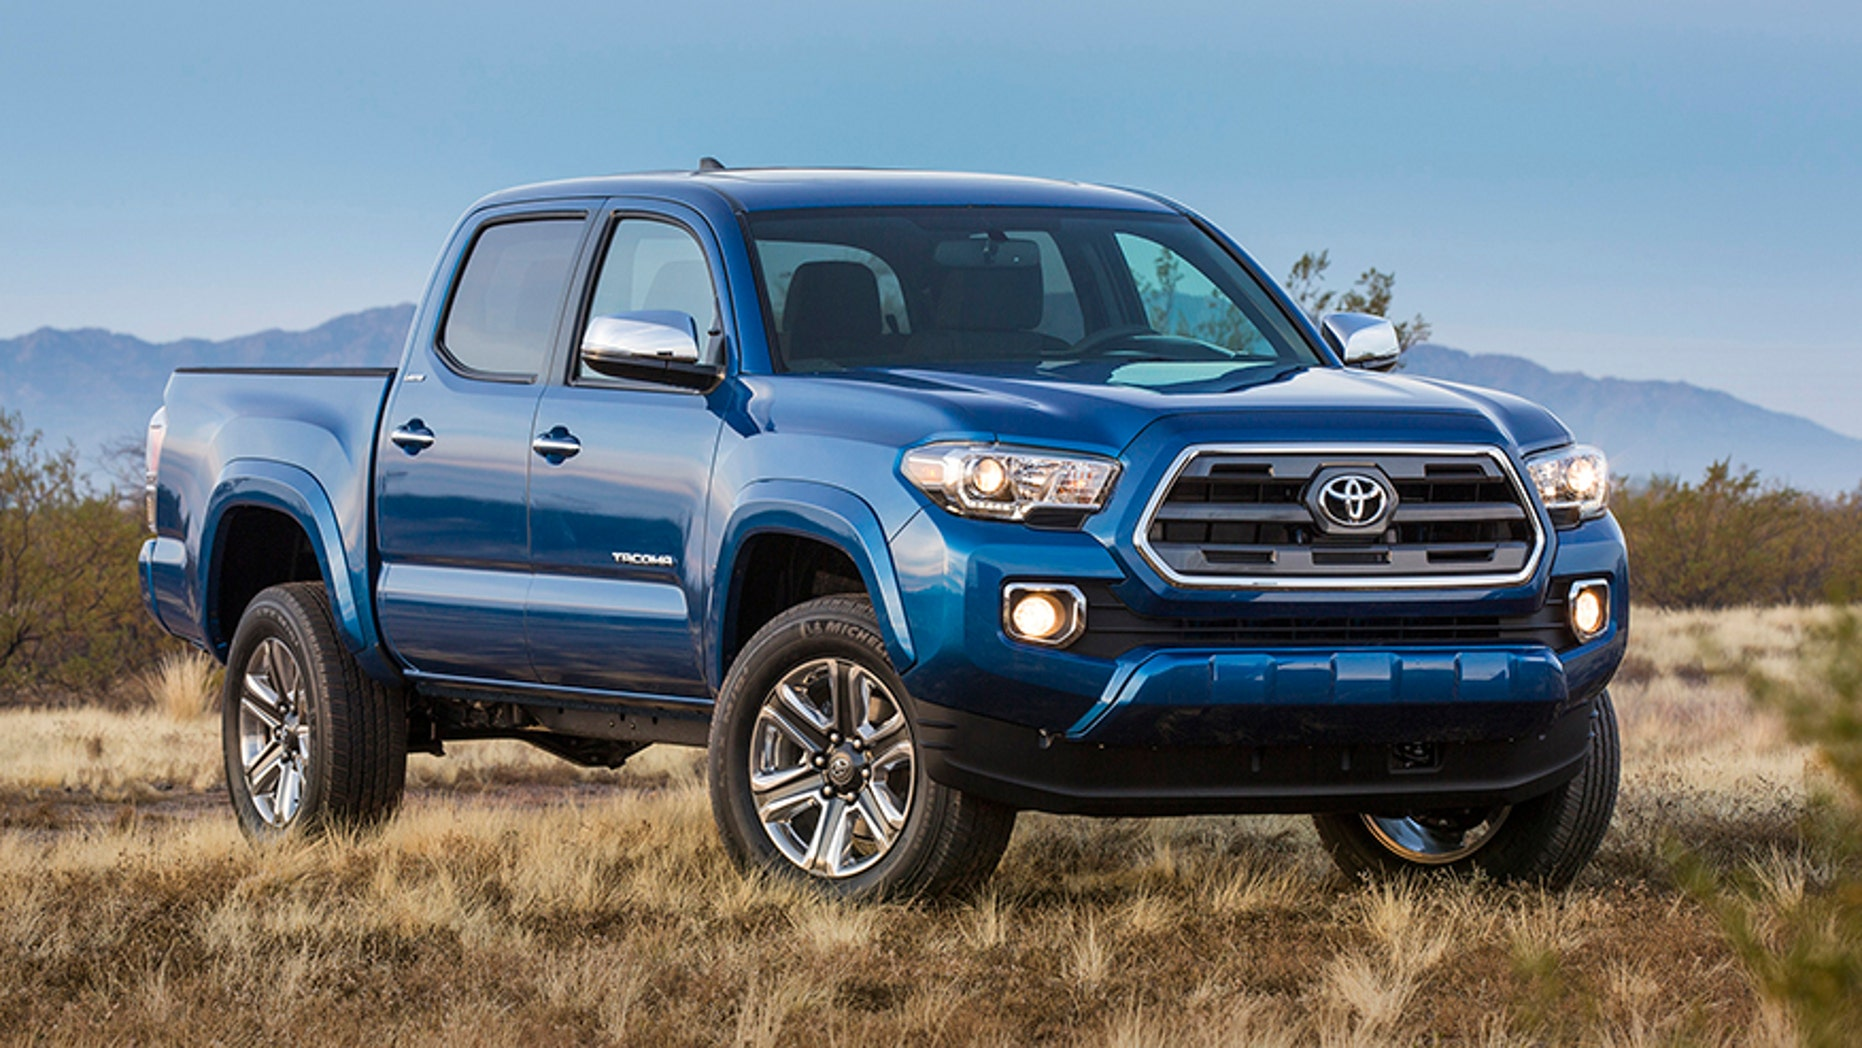 The 2015 Toyota Tacoma is the most dependable midsize pickup from that year.